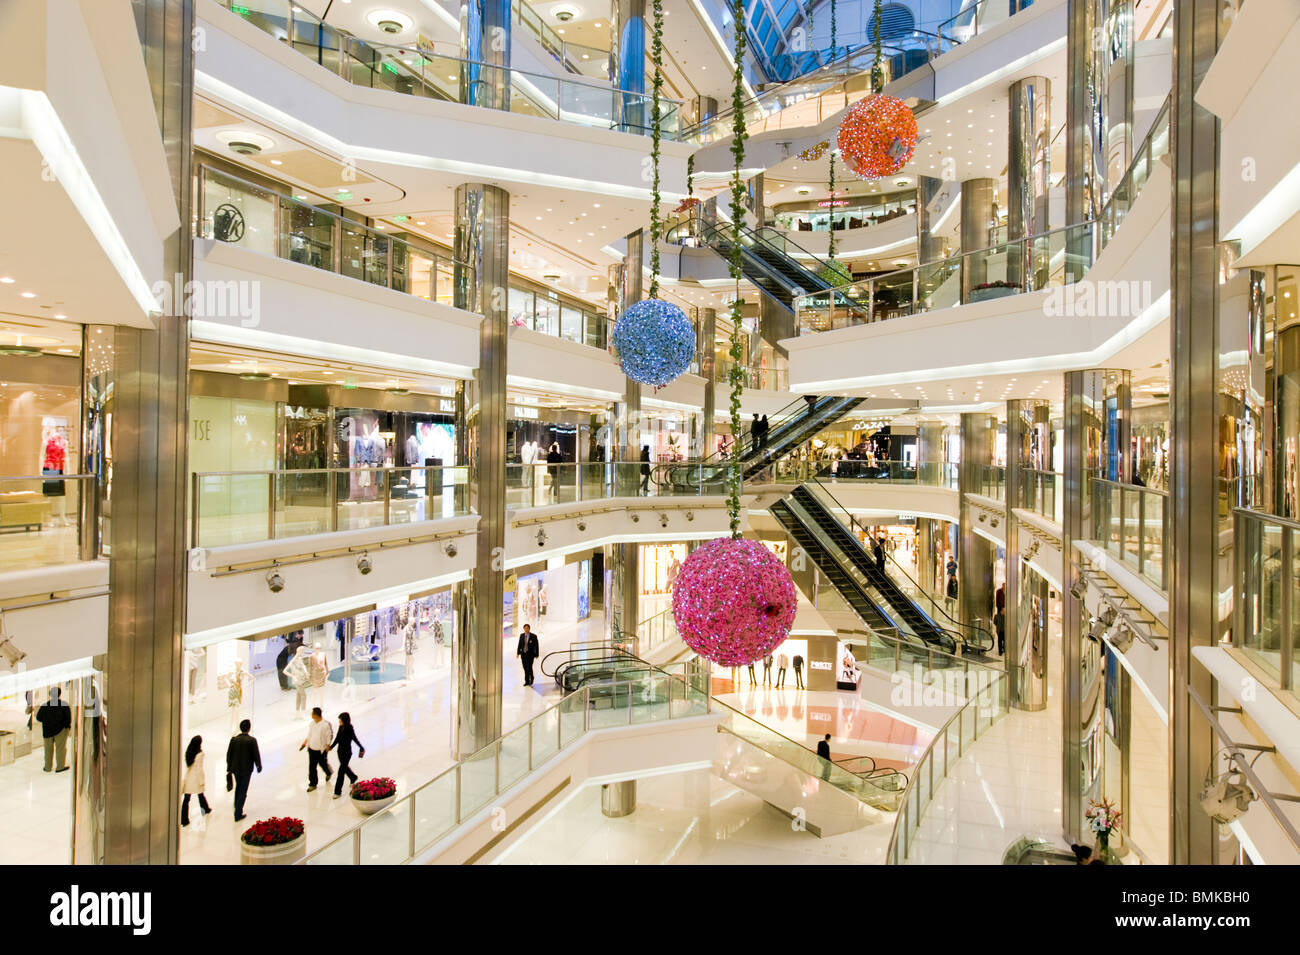 Citic Square shopping mall on Nanjing Road West, Shanghai, China - Stock Image